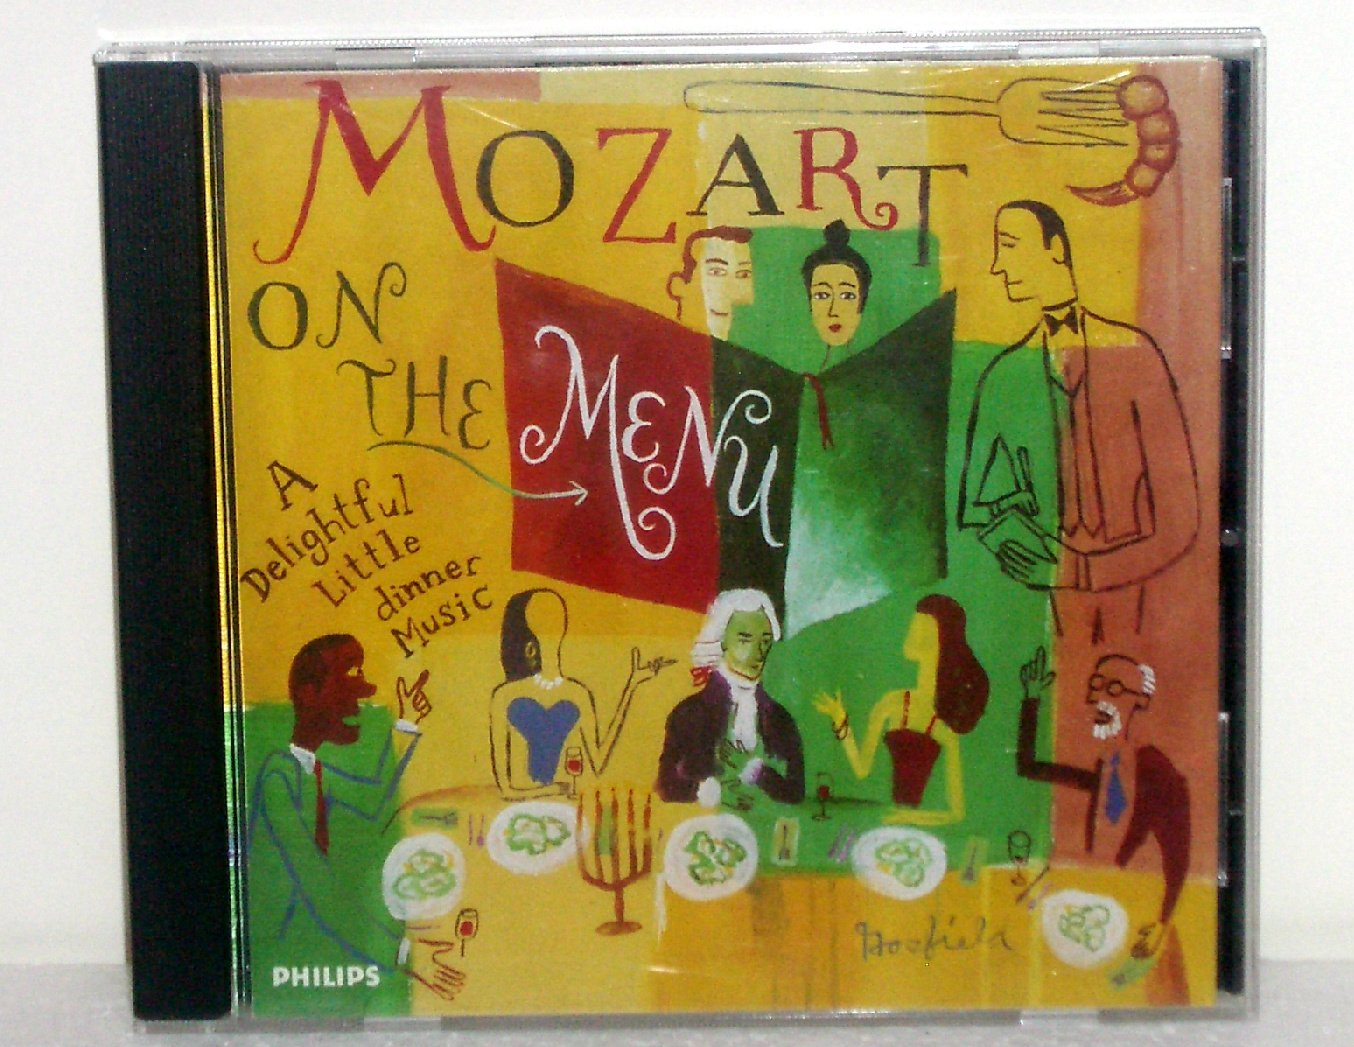 Mozart on the Menu: A Delightful Little Dinner Music  by Wolfgang Amadeus Mozart Audio CD 1995